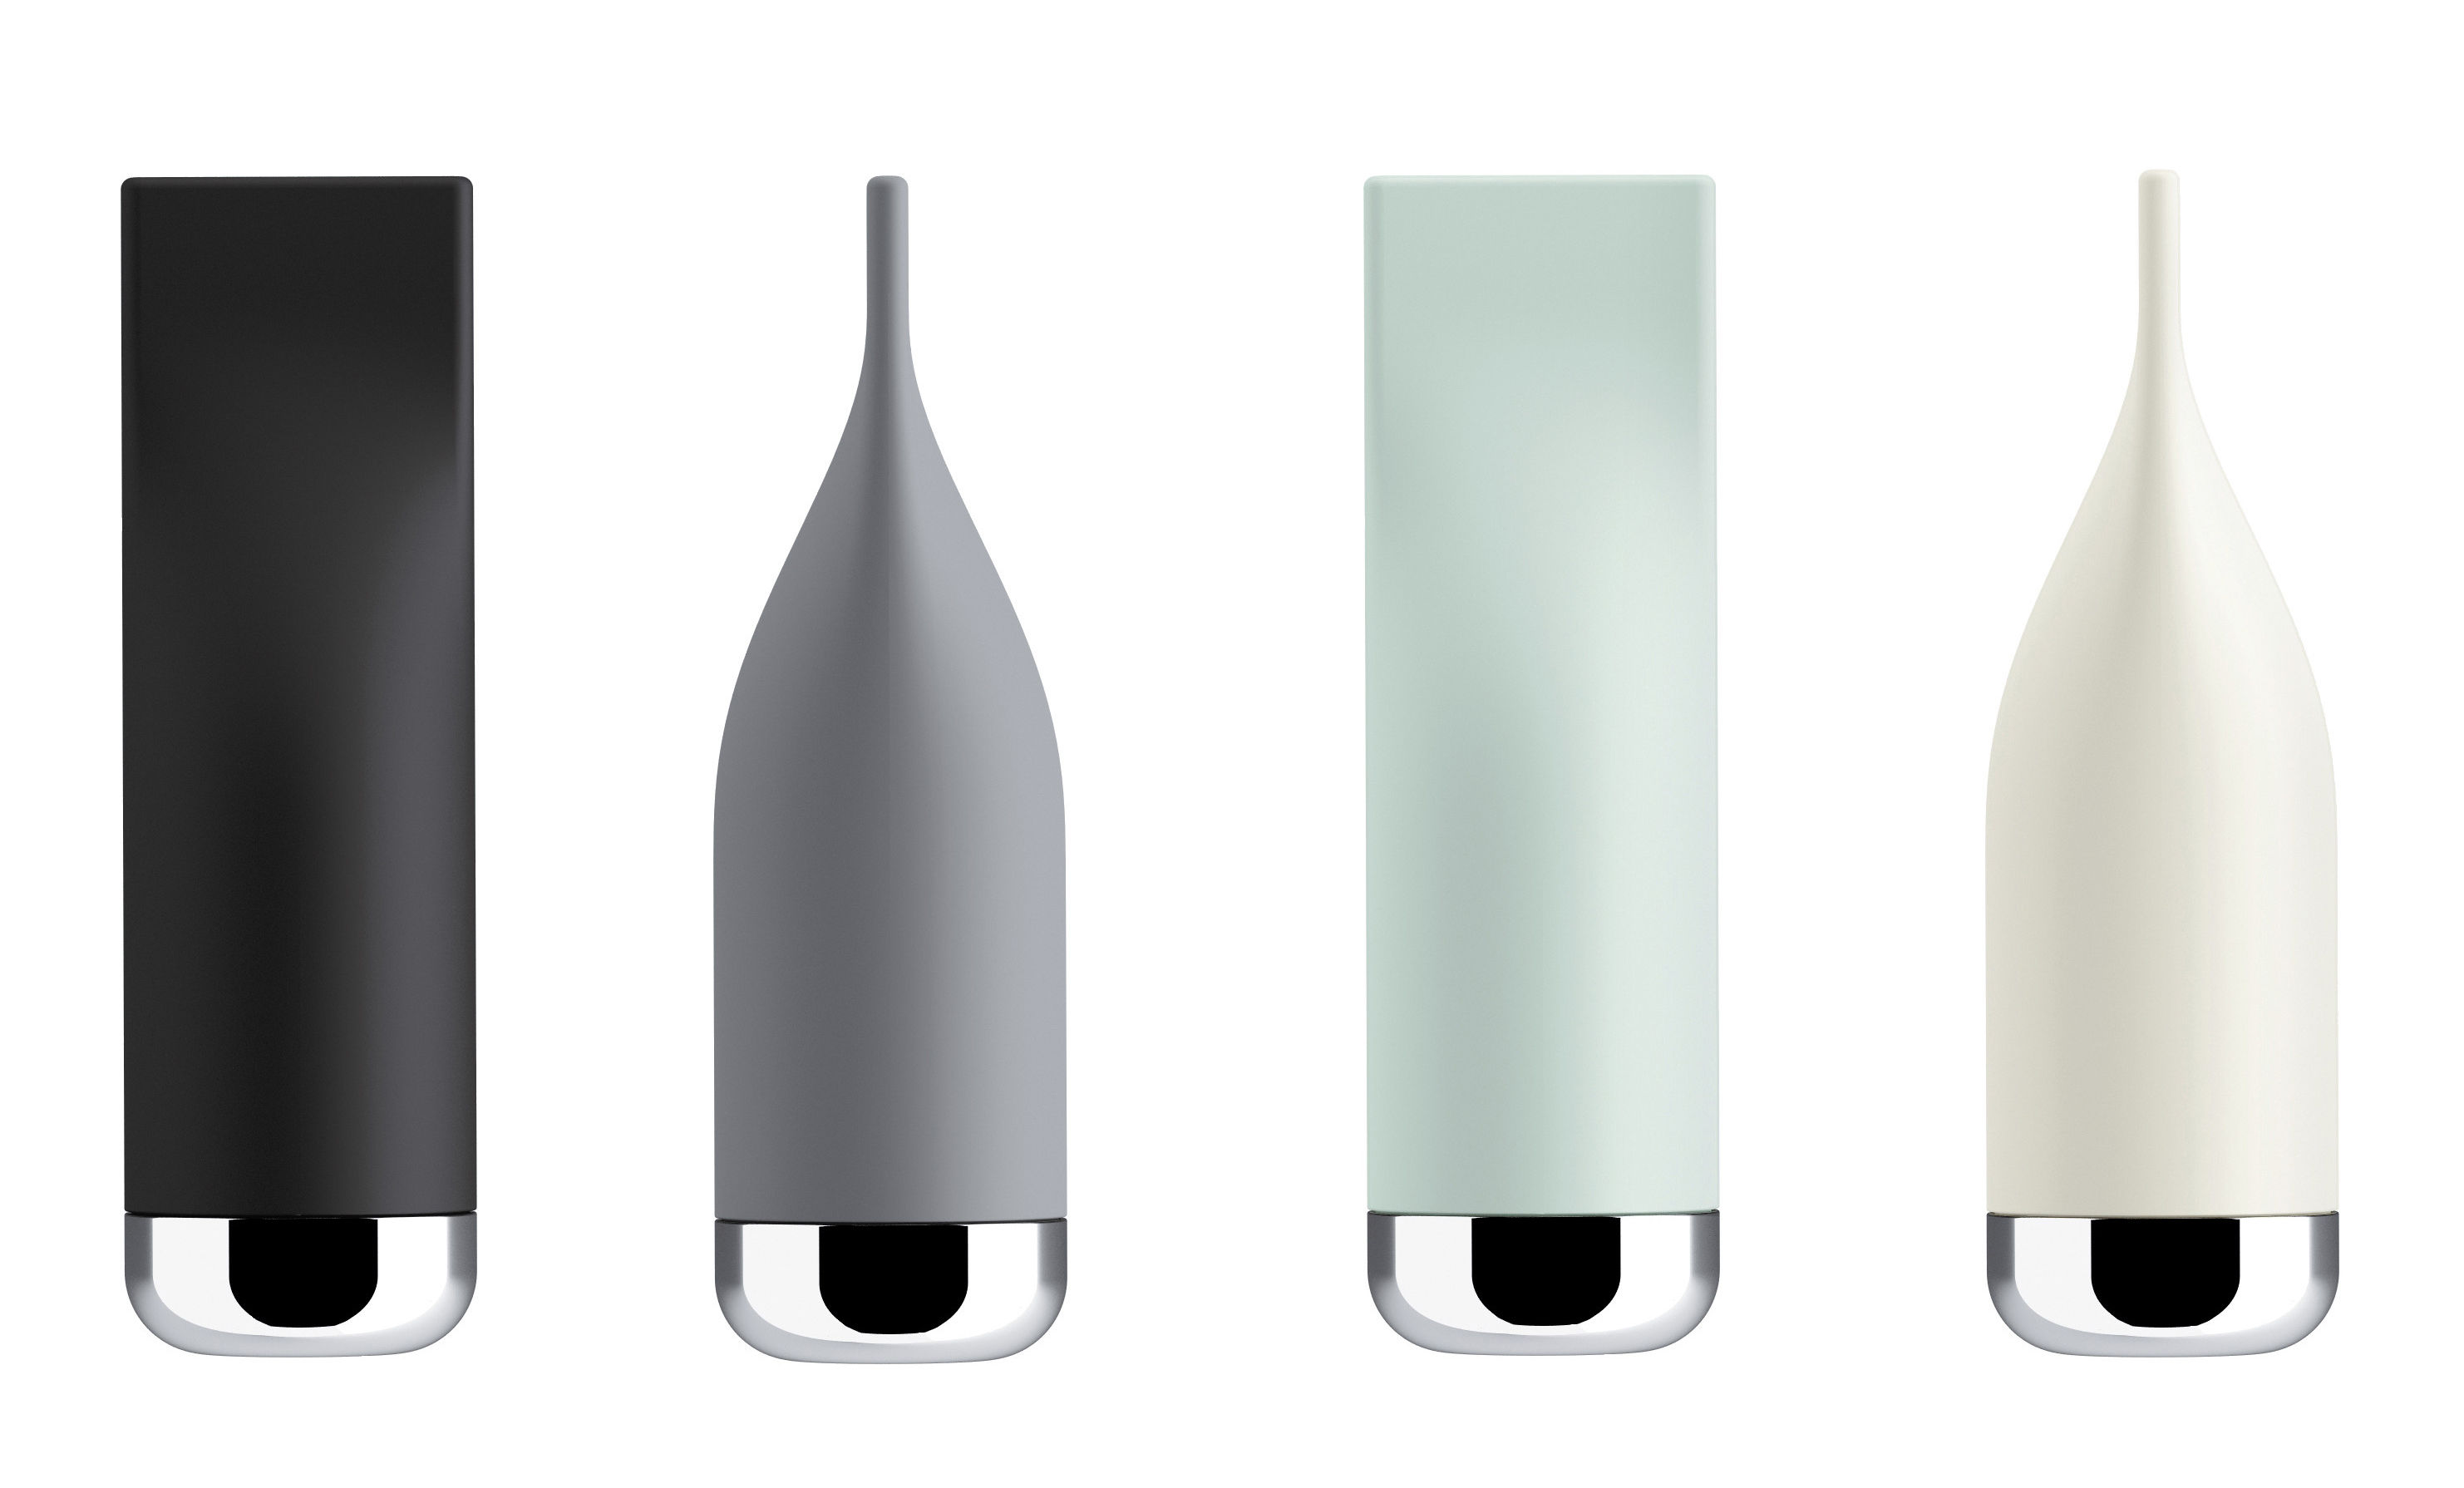 Pizzico salt shaker white by alessi made in design uk for Alessi salt and pepper shakers